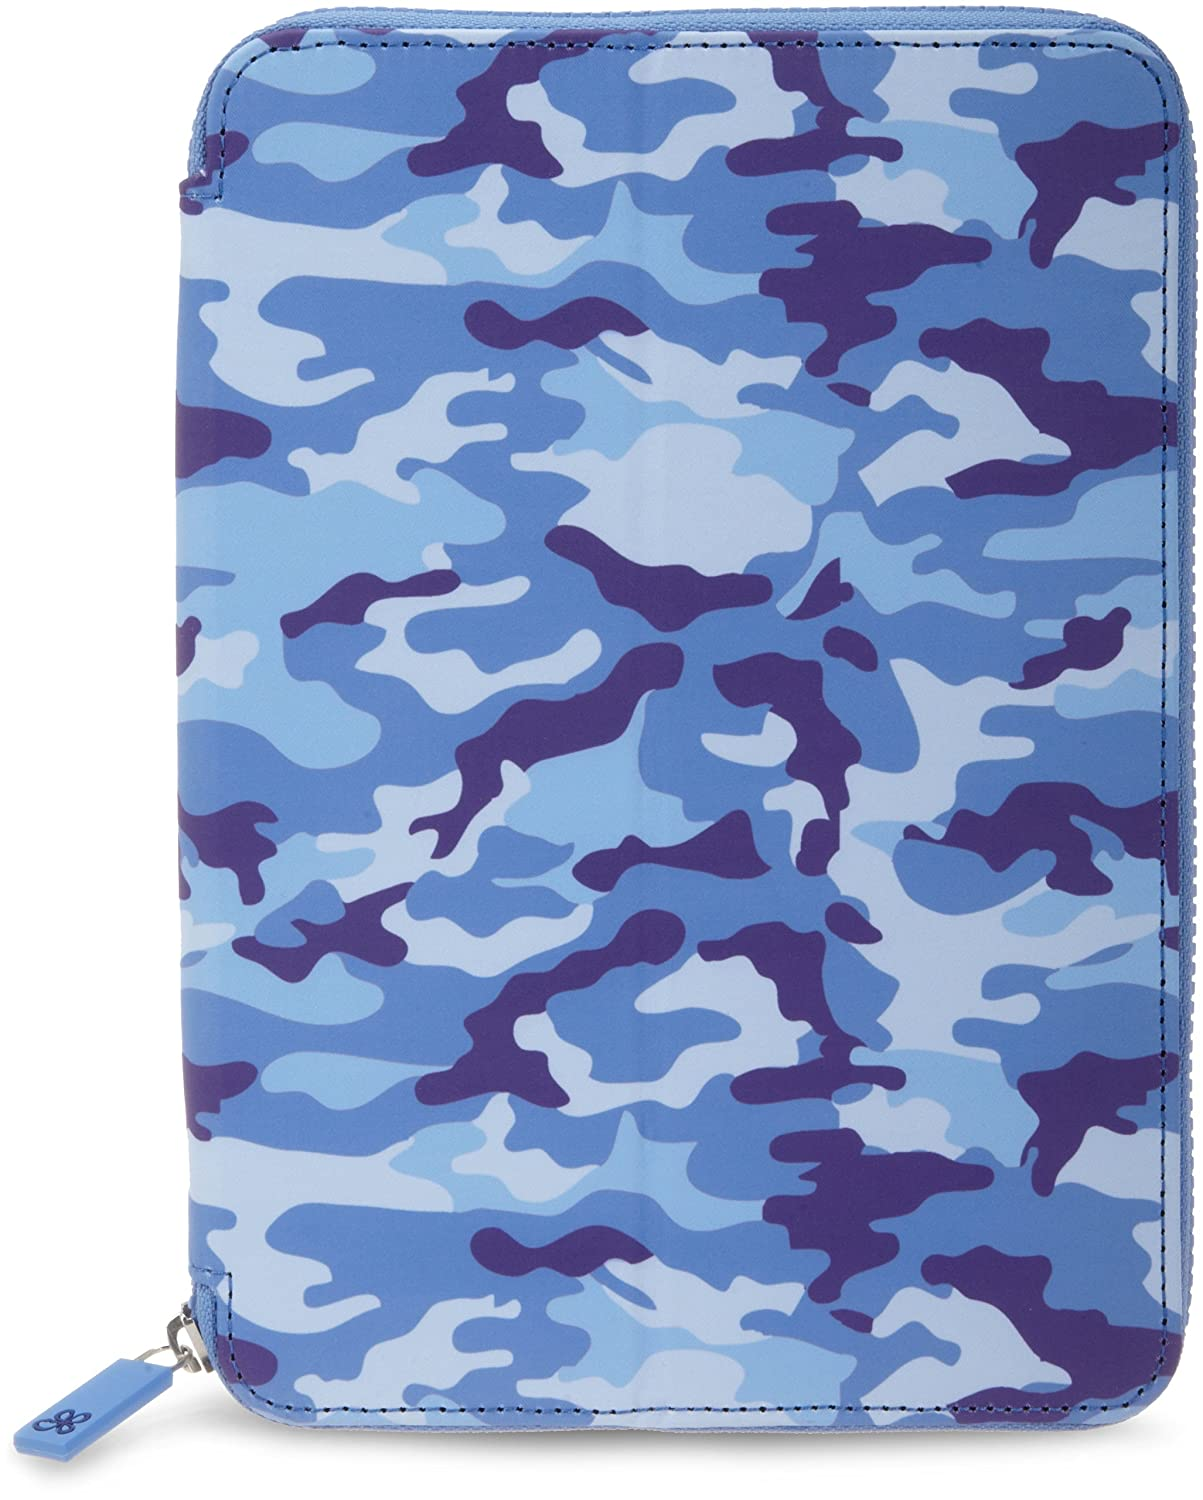 Made for Kindle Fire HD 8.9 Blue Camouflage PUNCHCASE By Leslie Hsu Ace Zip Around Standing Case